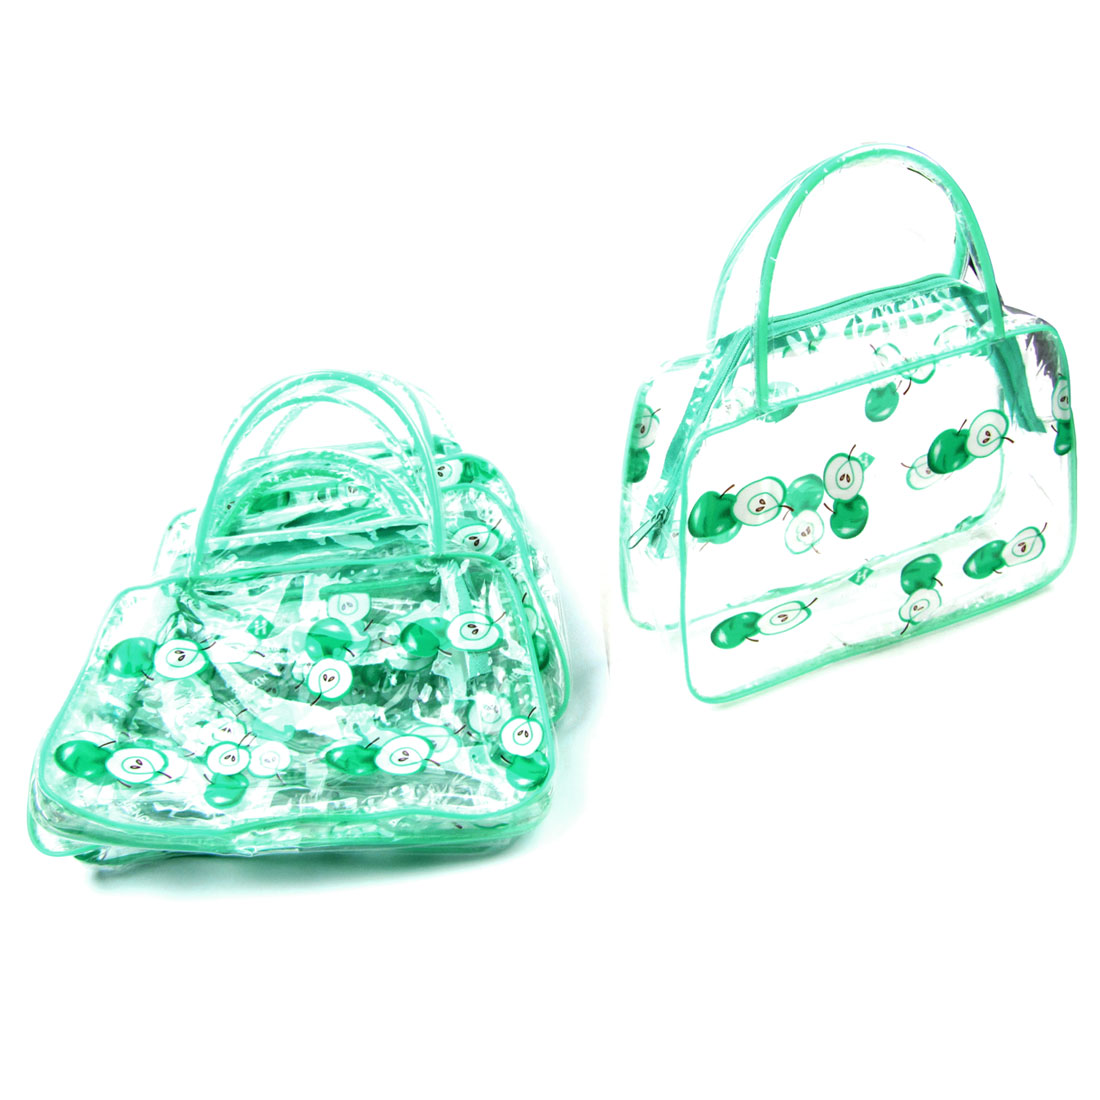 5 Pcs Lady Portable Apple Print Light Green Clear Plastic Cosmetic Makeup Bags